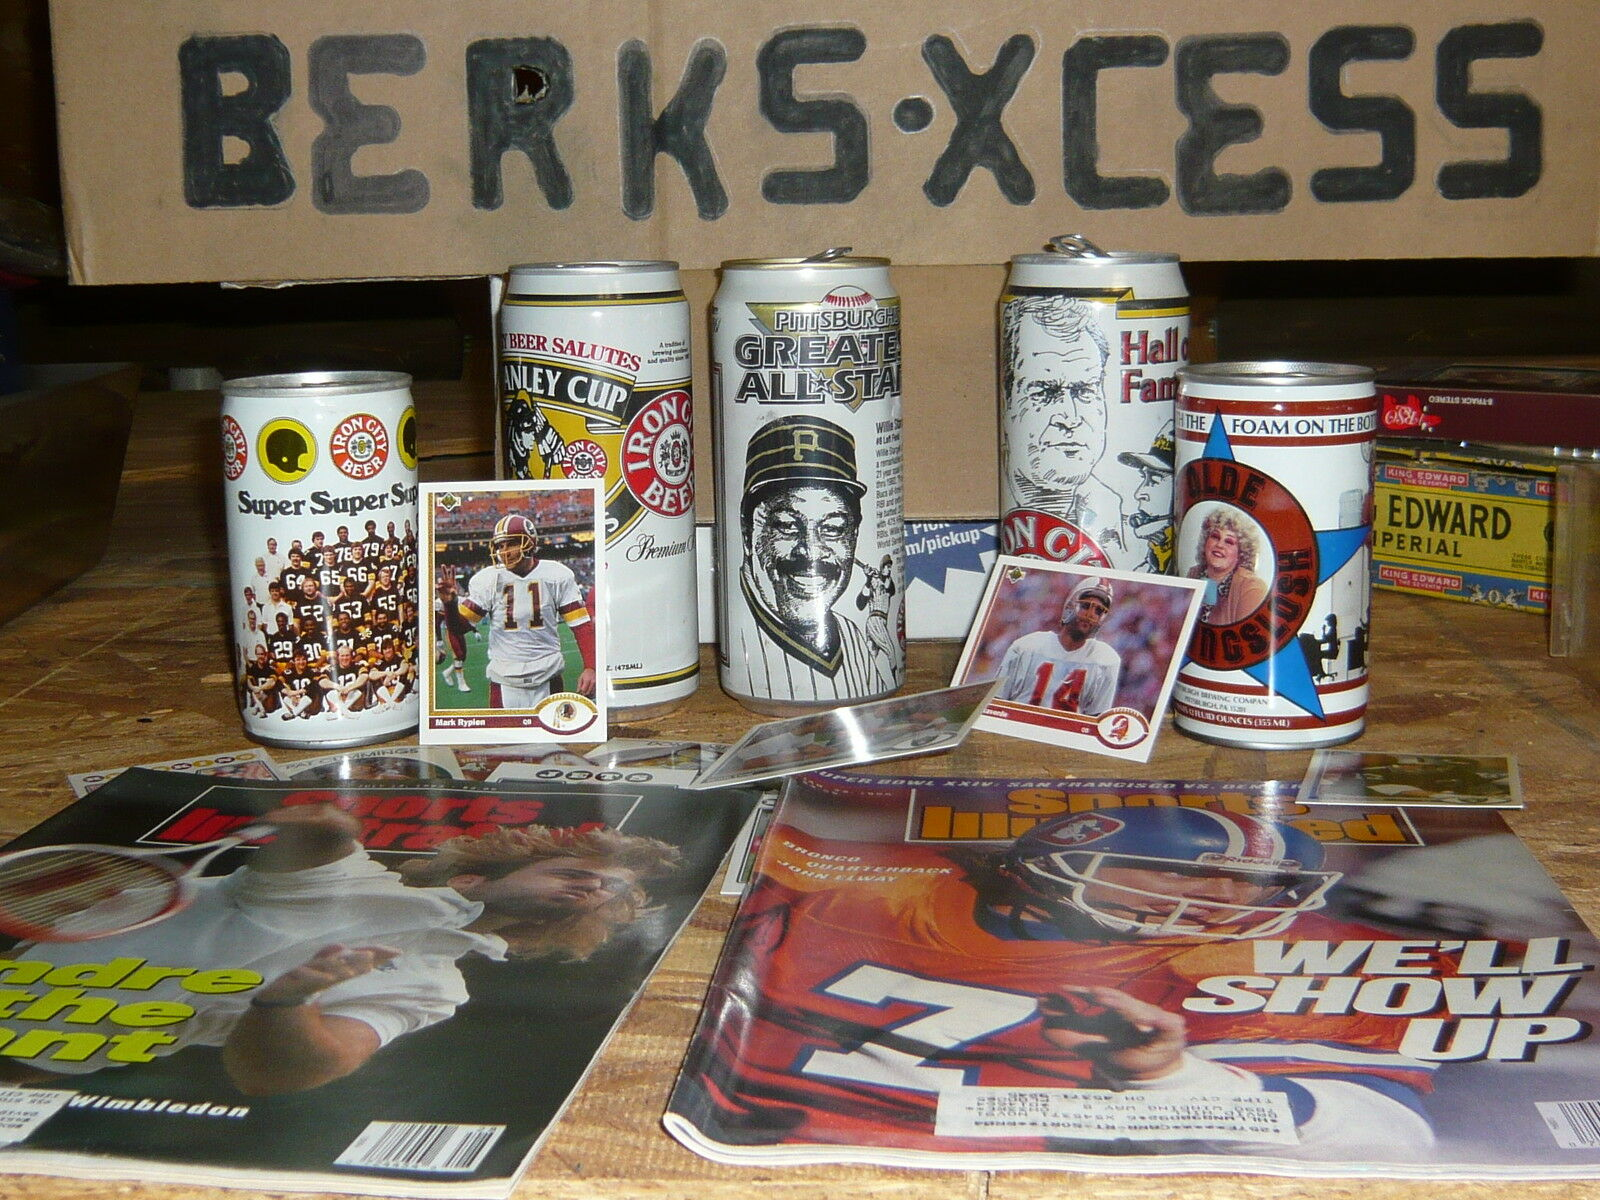 Berk s Xcess Stuff